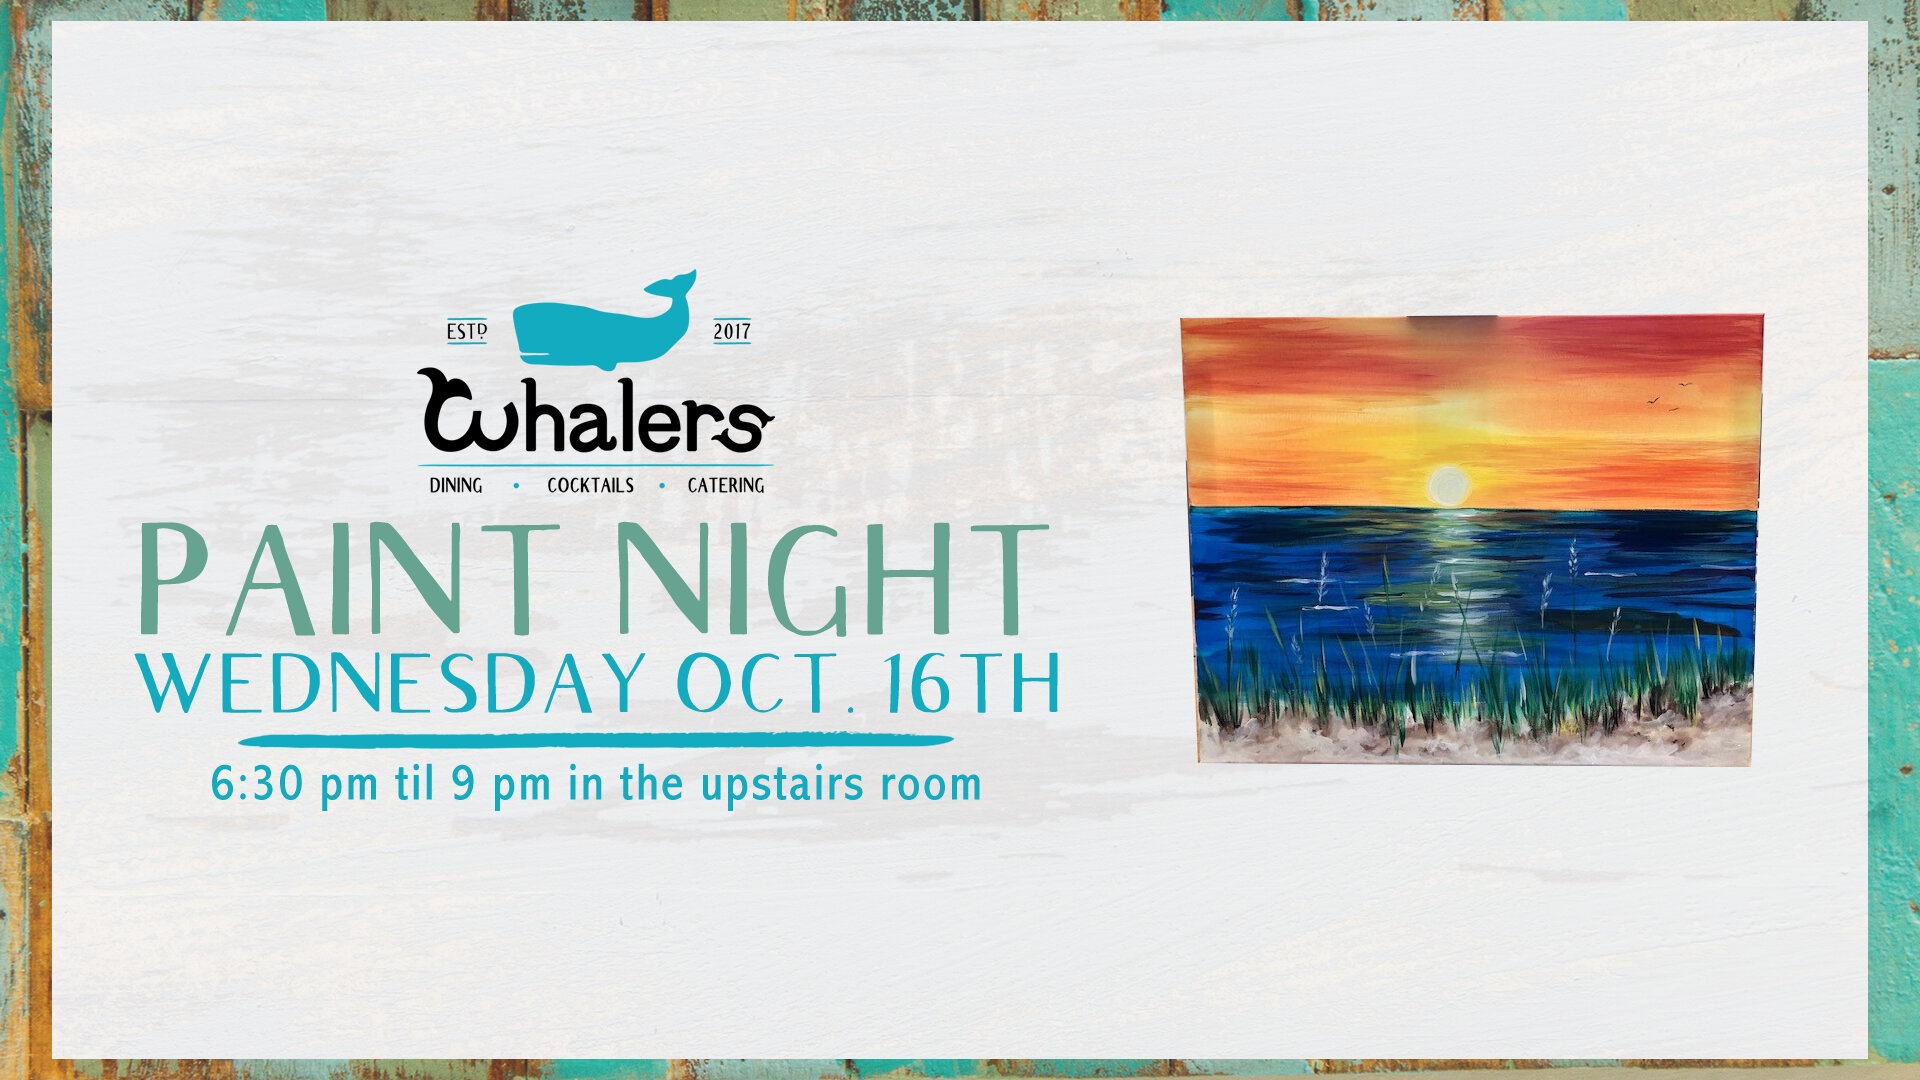 Flyer for Whalers Paint Night, Wednesday, October 16th at 6:30pm to 9pm in the upstairs room